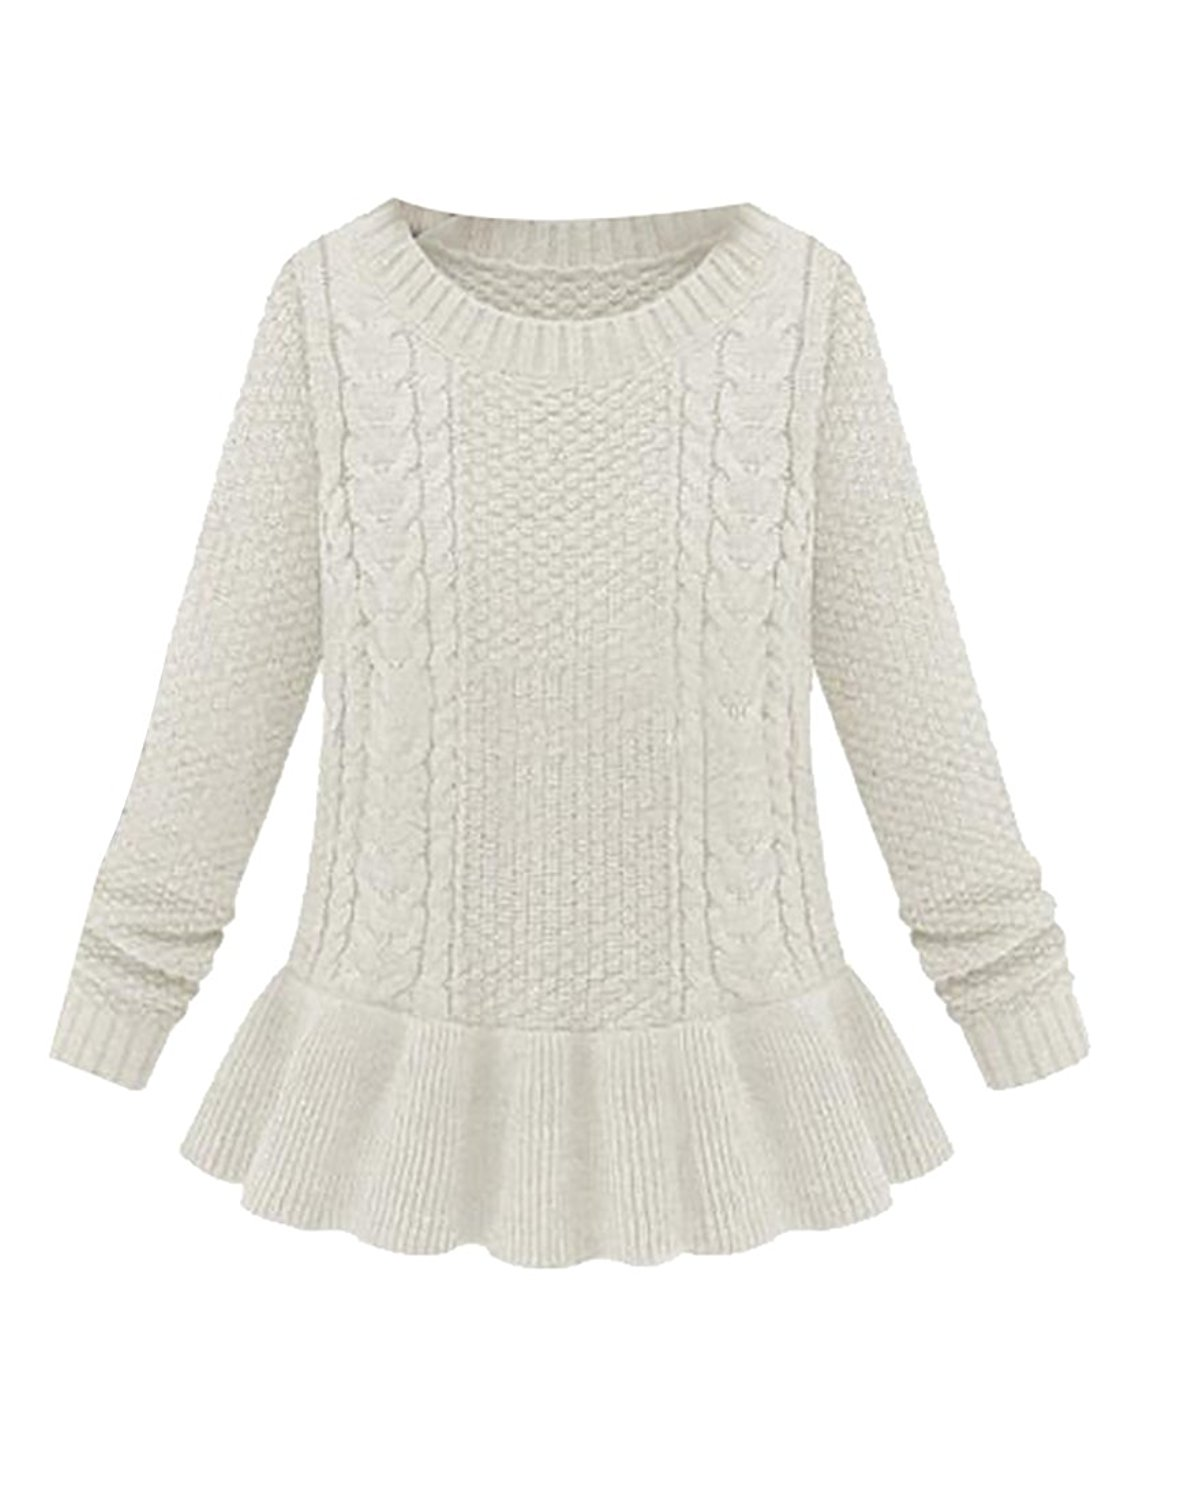 e5f4940a7b1df Get Quotations · UUYUK Womens Soft Baggy Cable Knit Round Neck Pullover  Sweater